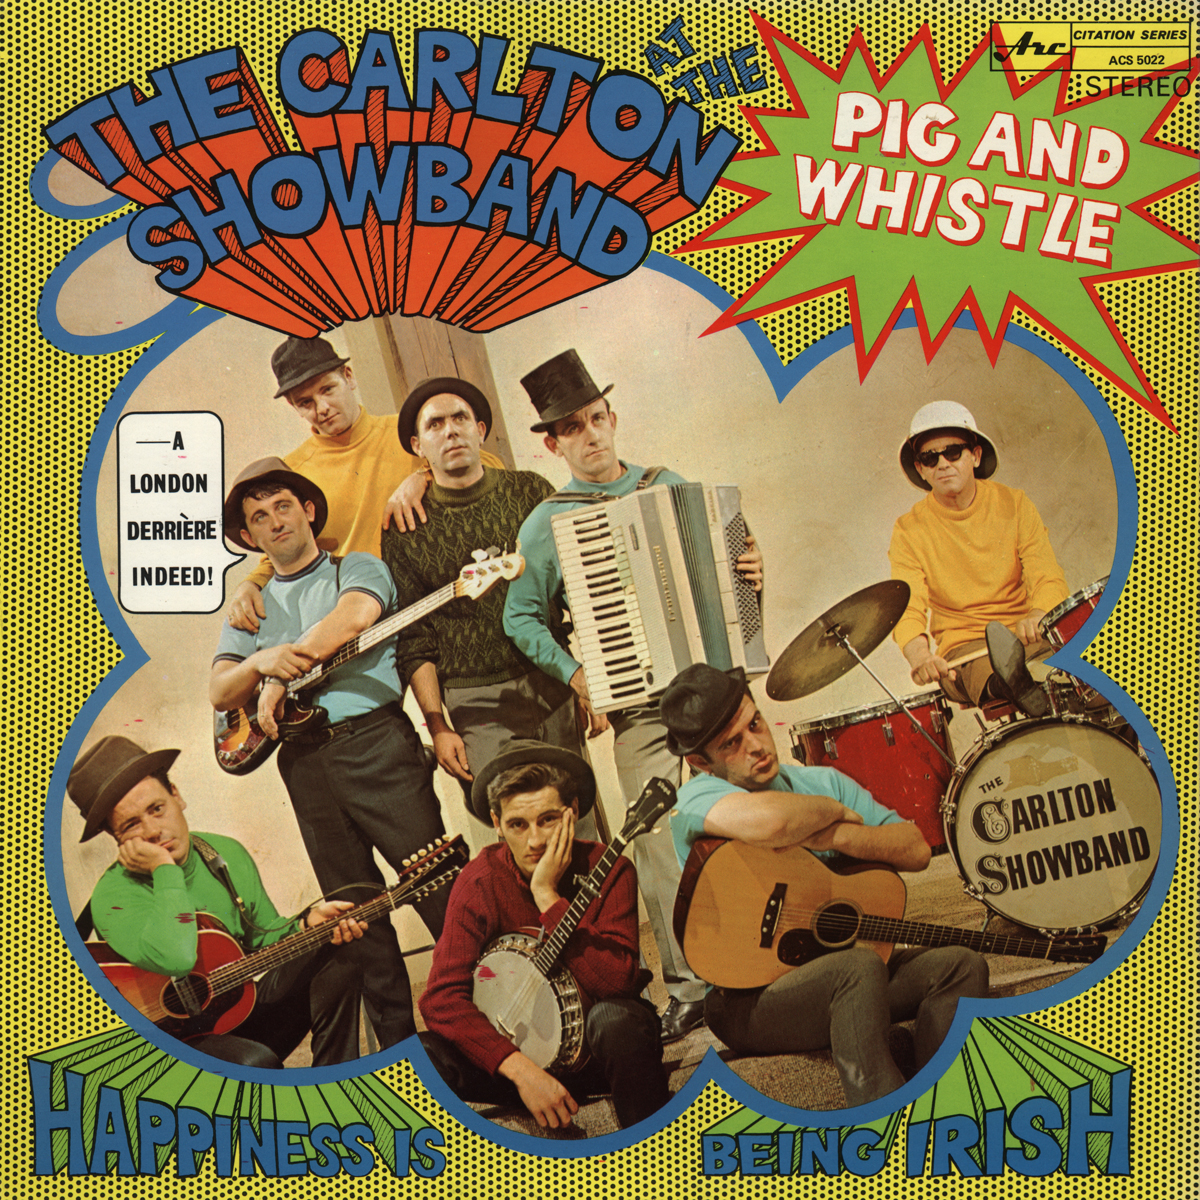 The Carlton Showband - If You're Irish